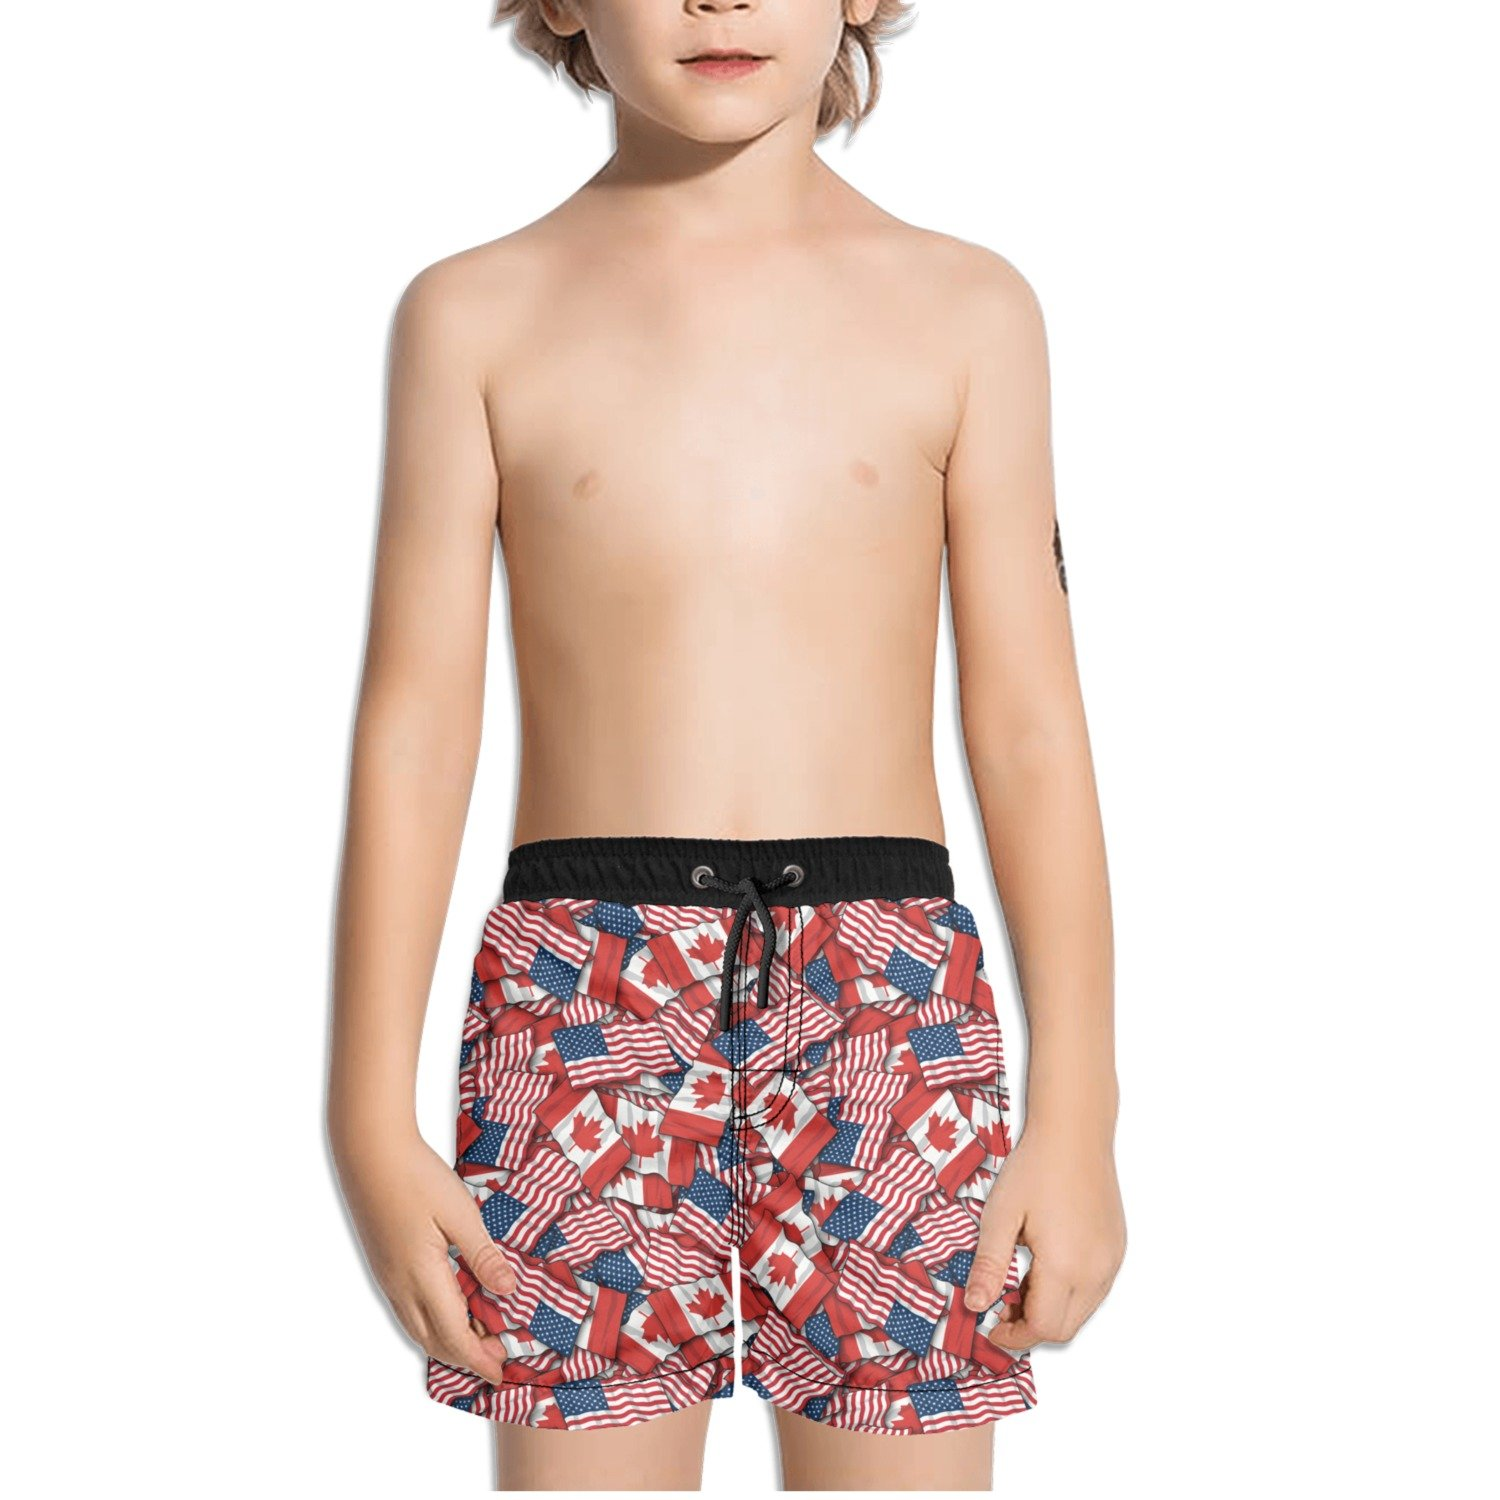 FullBo Canadian American Flag Pattern Little Boys Short Swim Trunks Quick Dry Beach Shorts